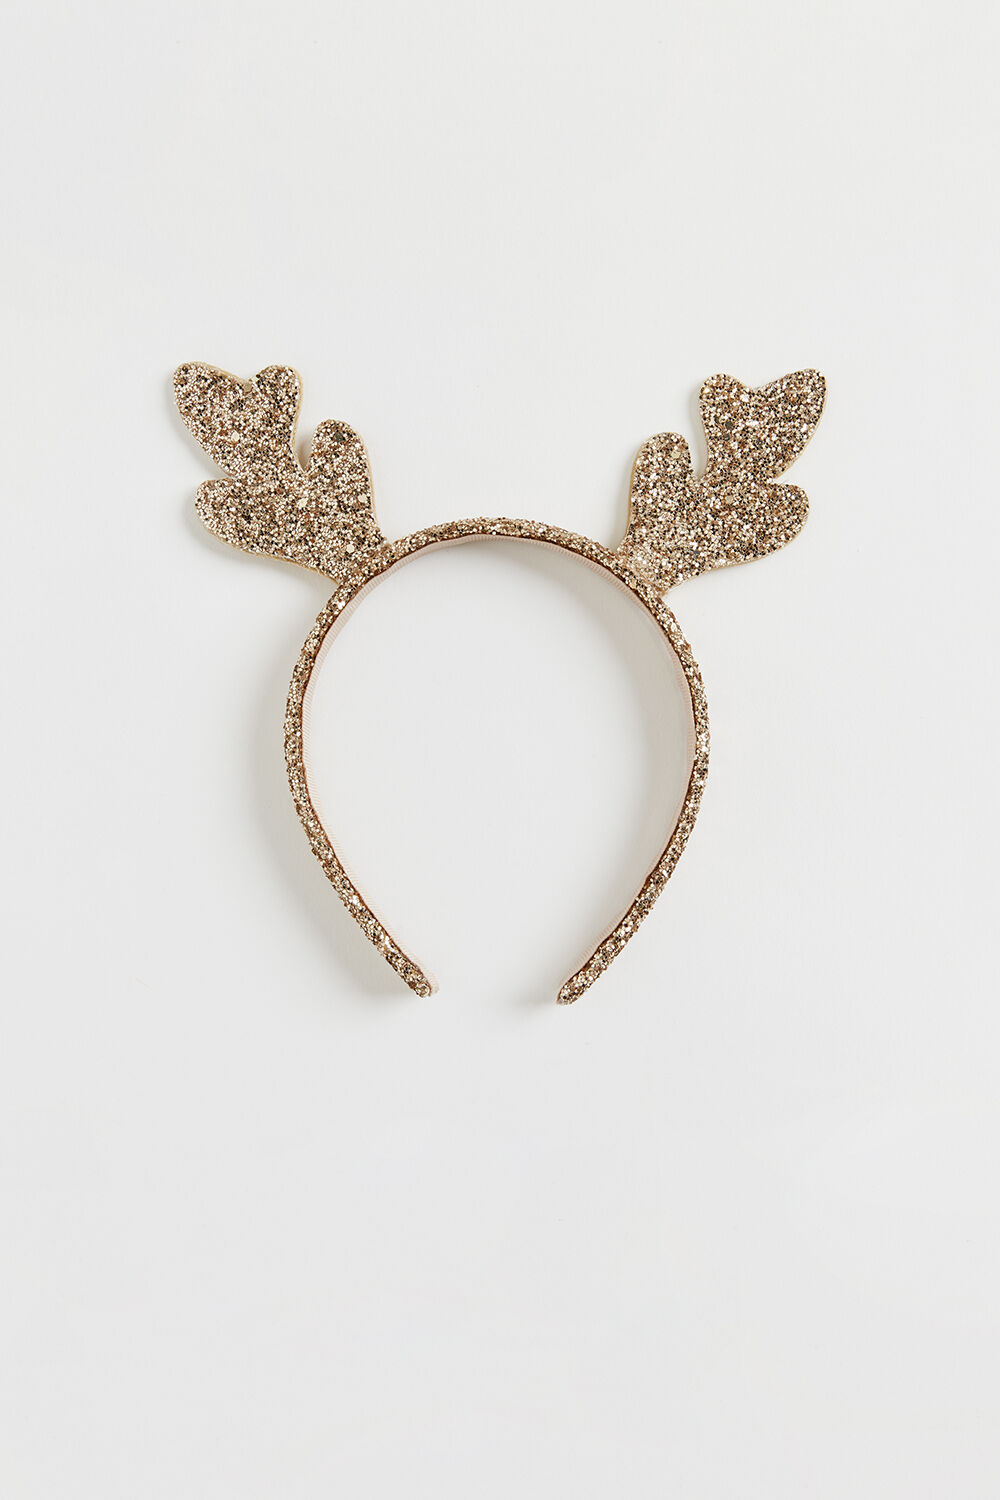 GOLD REINDEER HEADBAND in colour GOLD EARTH